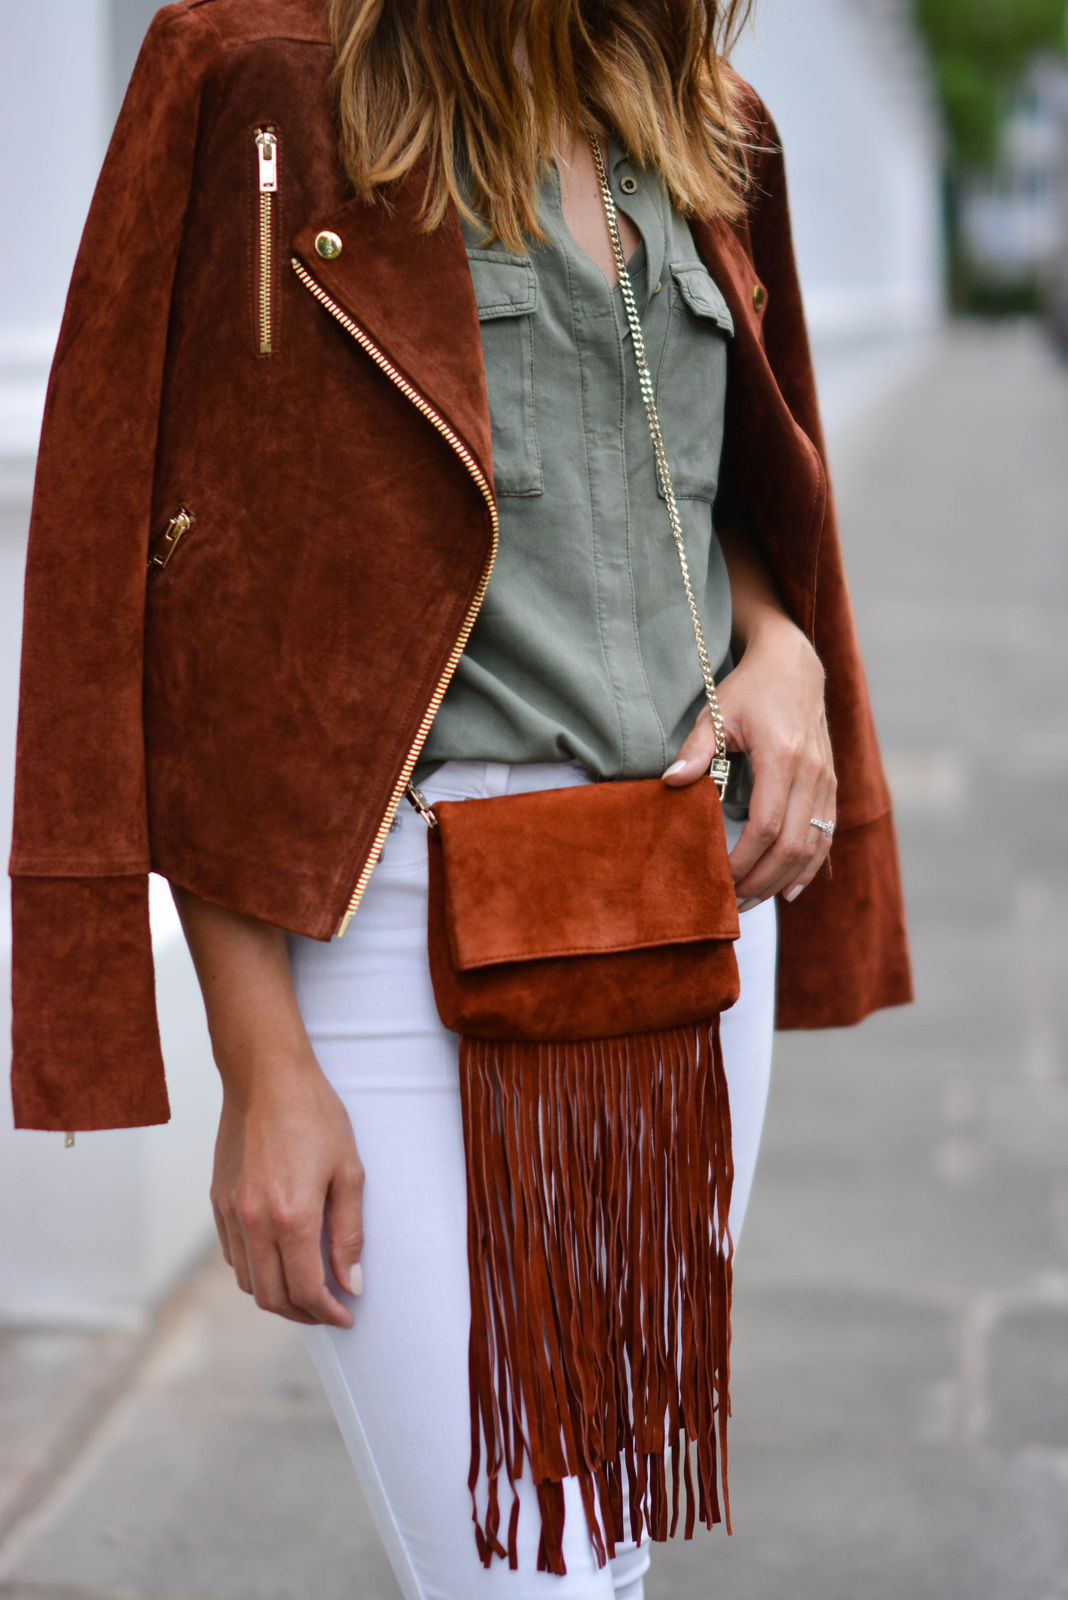 EJSTYLE - Rust suede biker jacket, Khaki shirt, white jeans, rust suede tassel fringe cross body bag